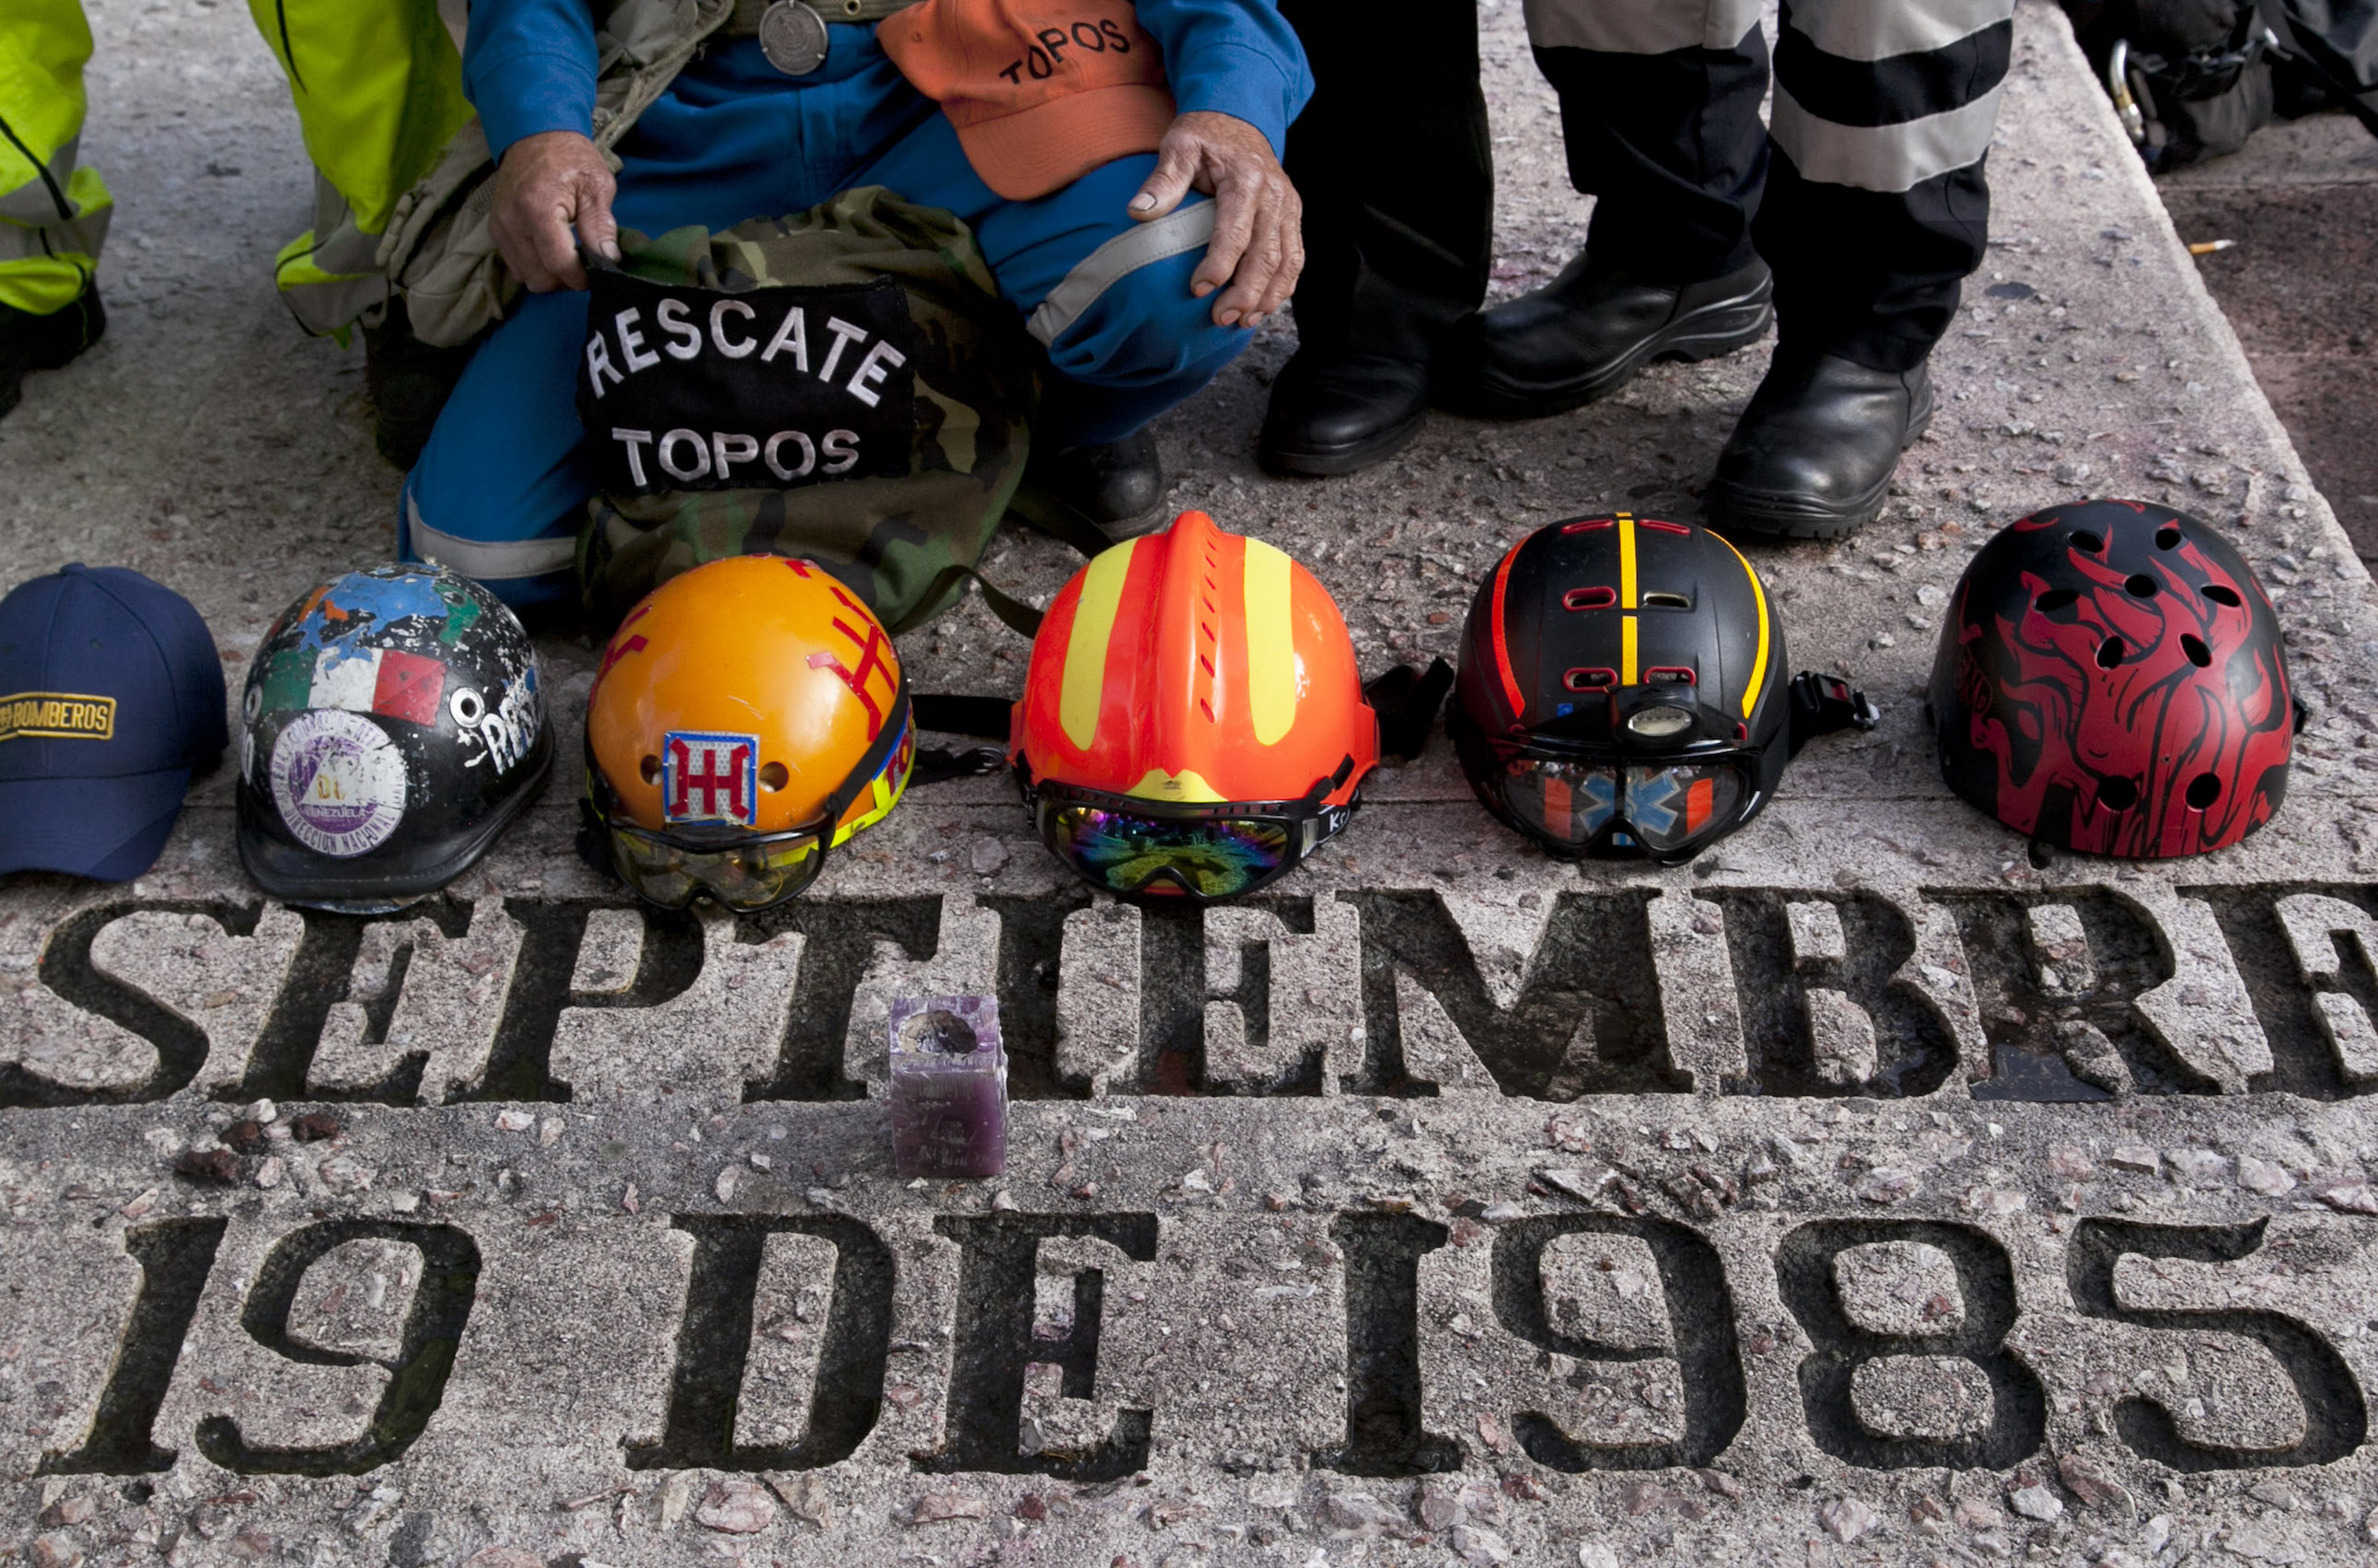 Rescue workers' hats sit on a memorial honoring those who died in the 1985 earthquake on the 30th anniversary in Mexico City, Saturday, Sept. 19, 2015. Voluntary civil brigades were created to lead rescue operations after the 8.1-magnitude earthquake struck Mexico City, killing thousands of people and leaving many homeless. (AP Photo/Marco Ugarte)